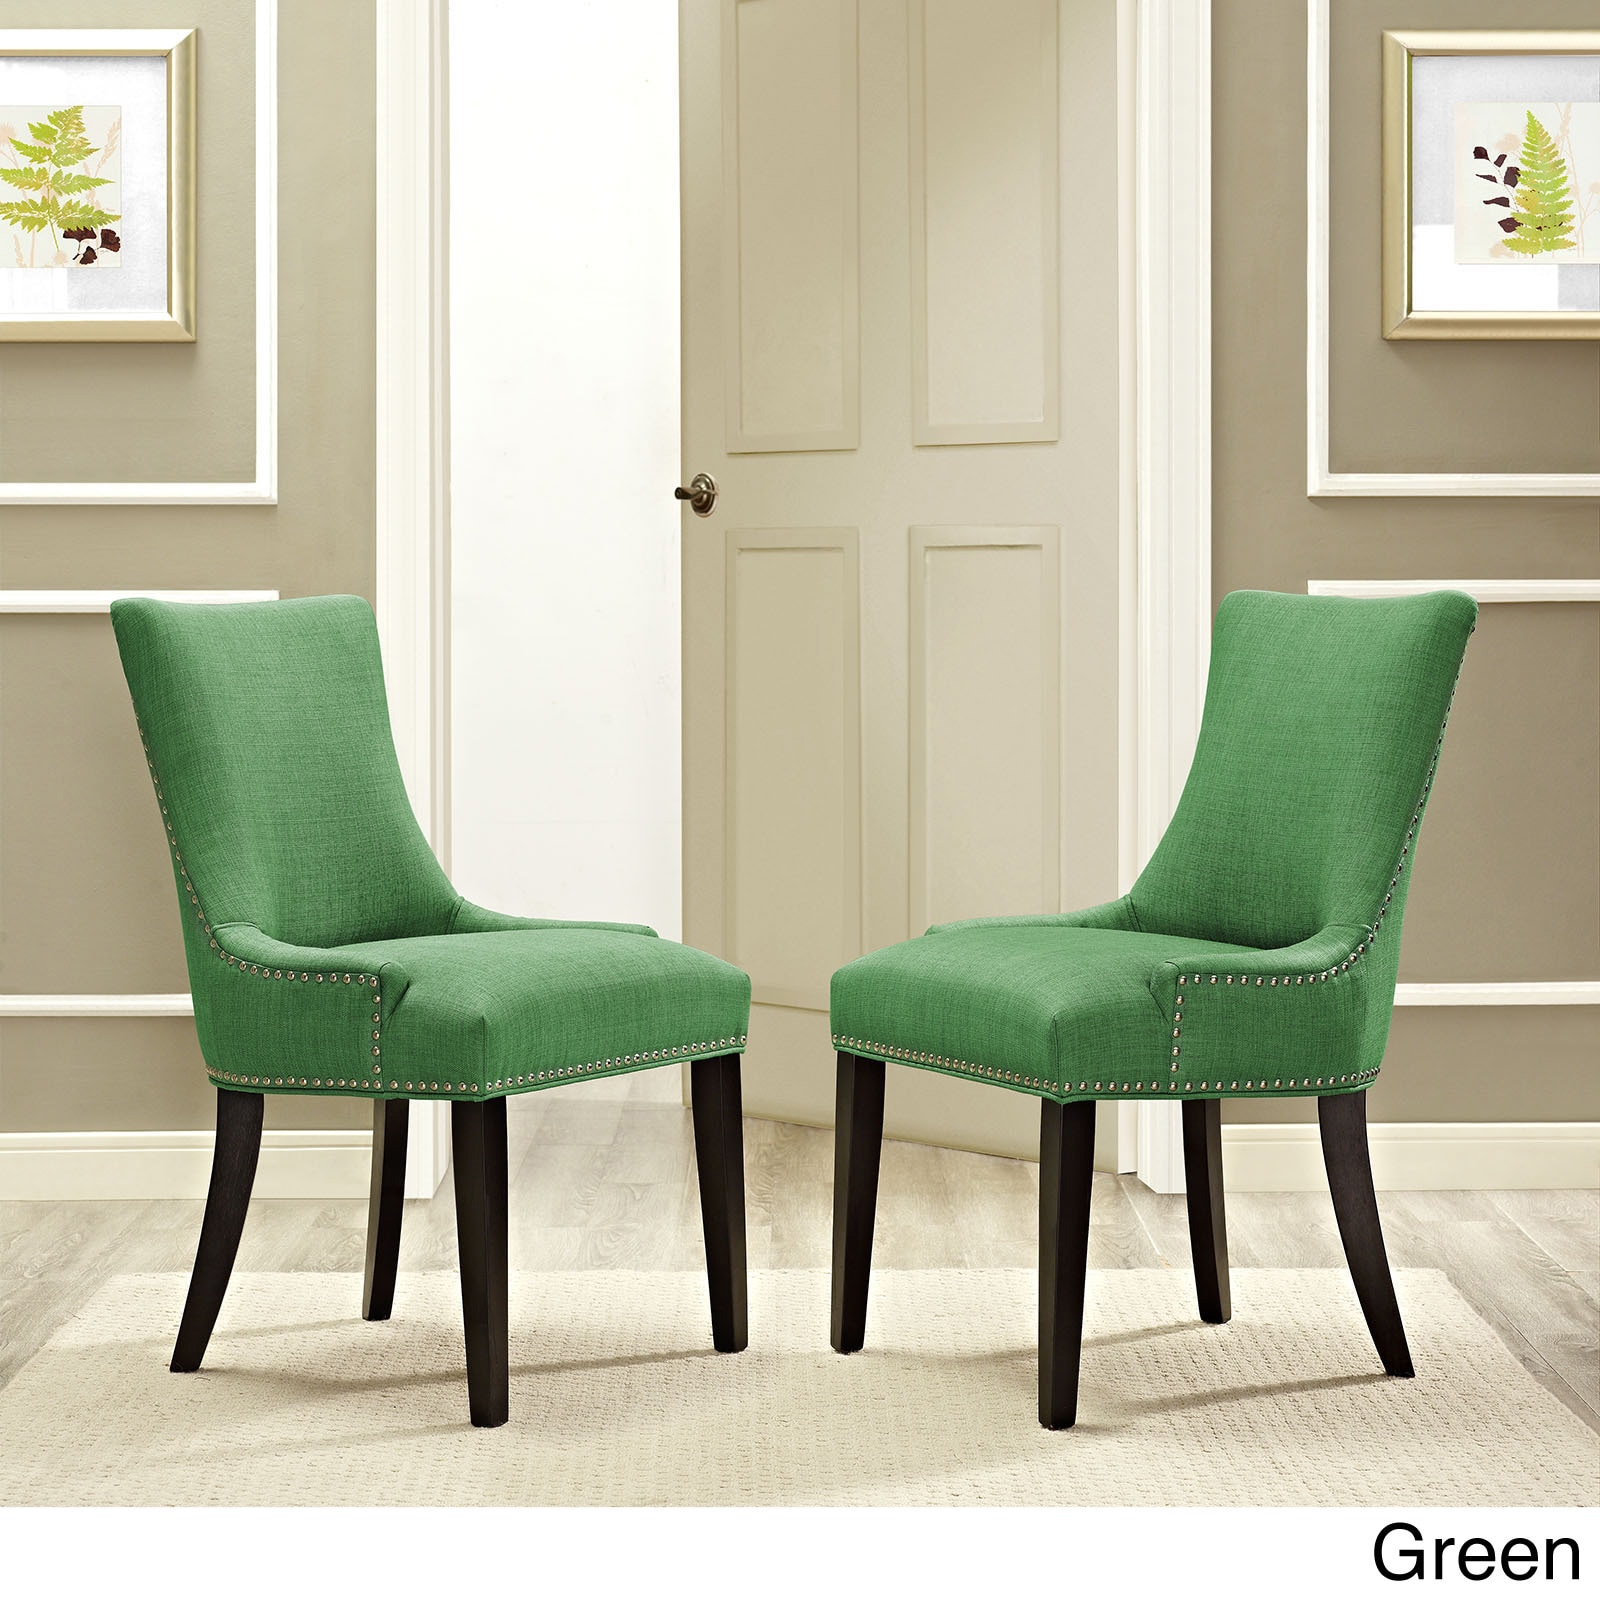 Green Kitchen Dining Room Chairs Online At Our Best Bar Furniture Deals